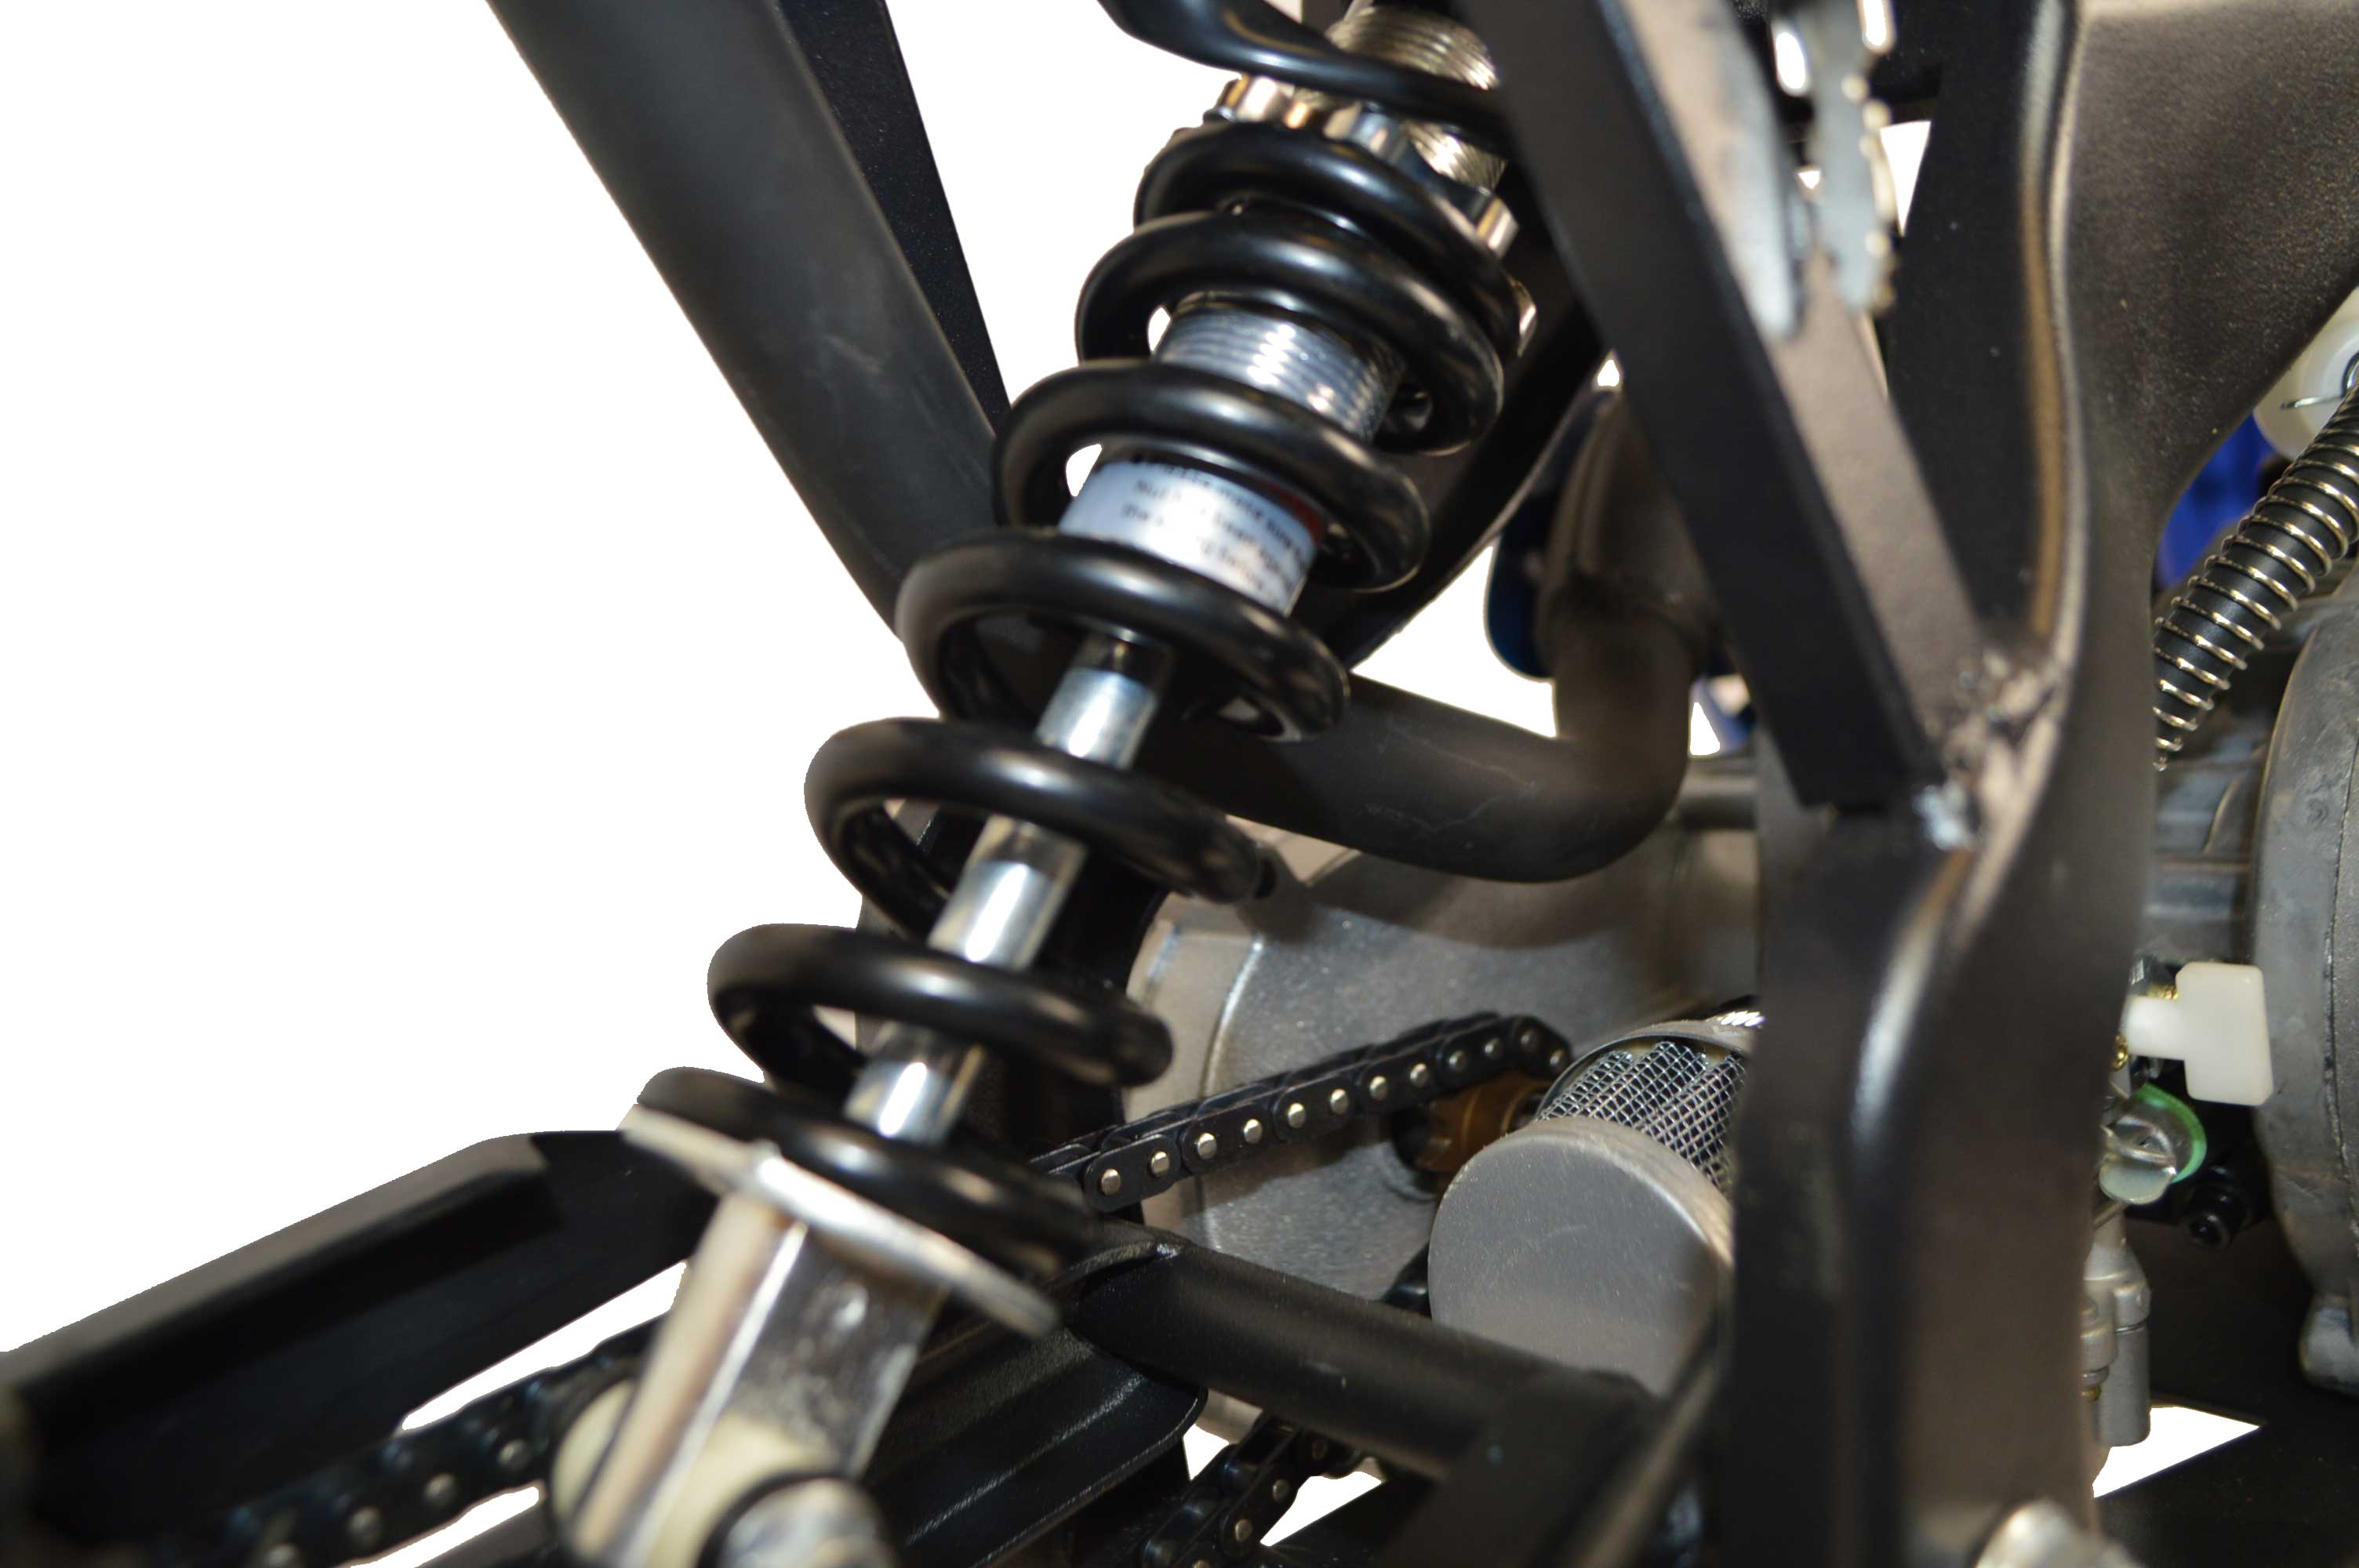 Mono shock suspension